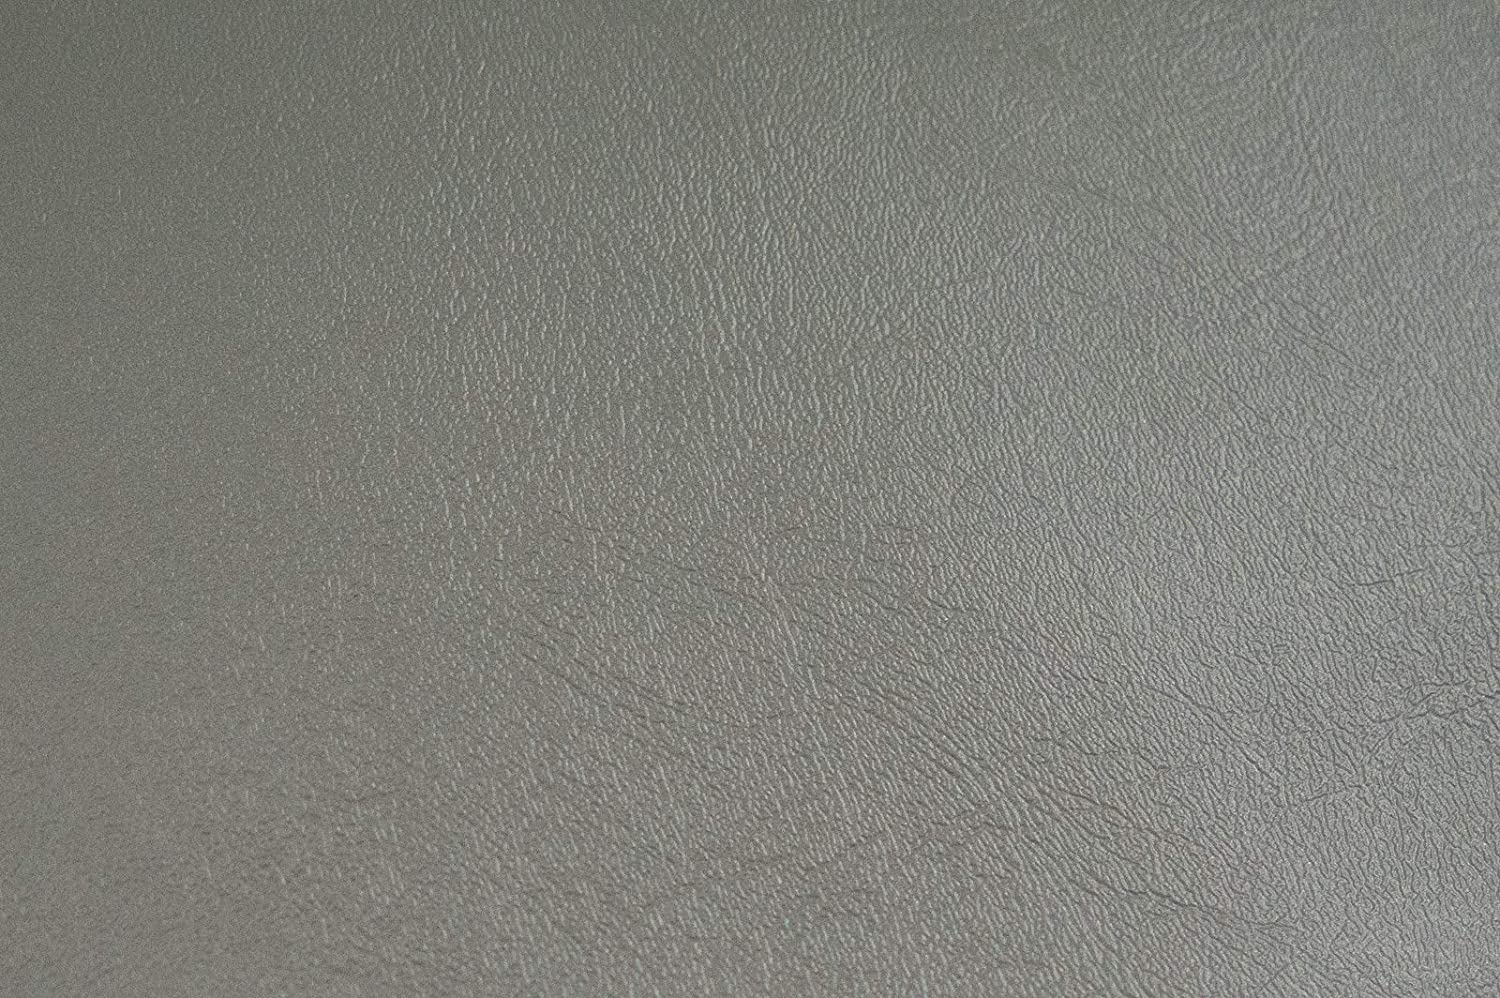 Vinyl Upholstery Fabric Light Gray 54 Wide by The Yard Auto Home Commercial